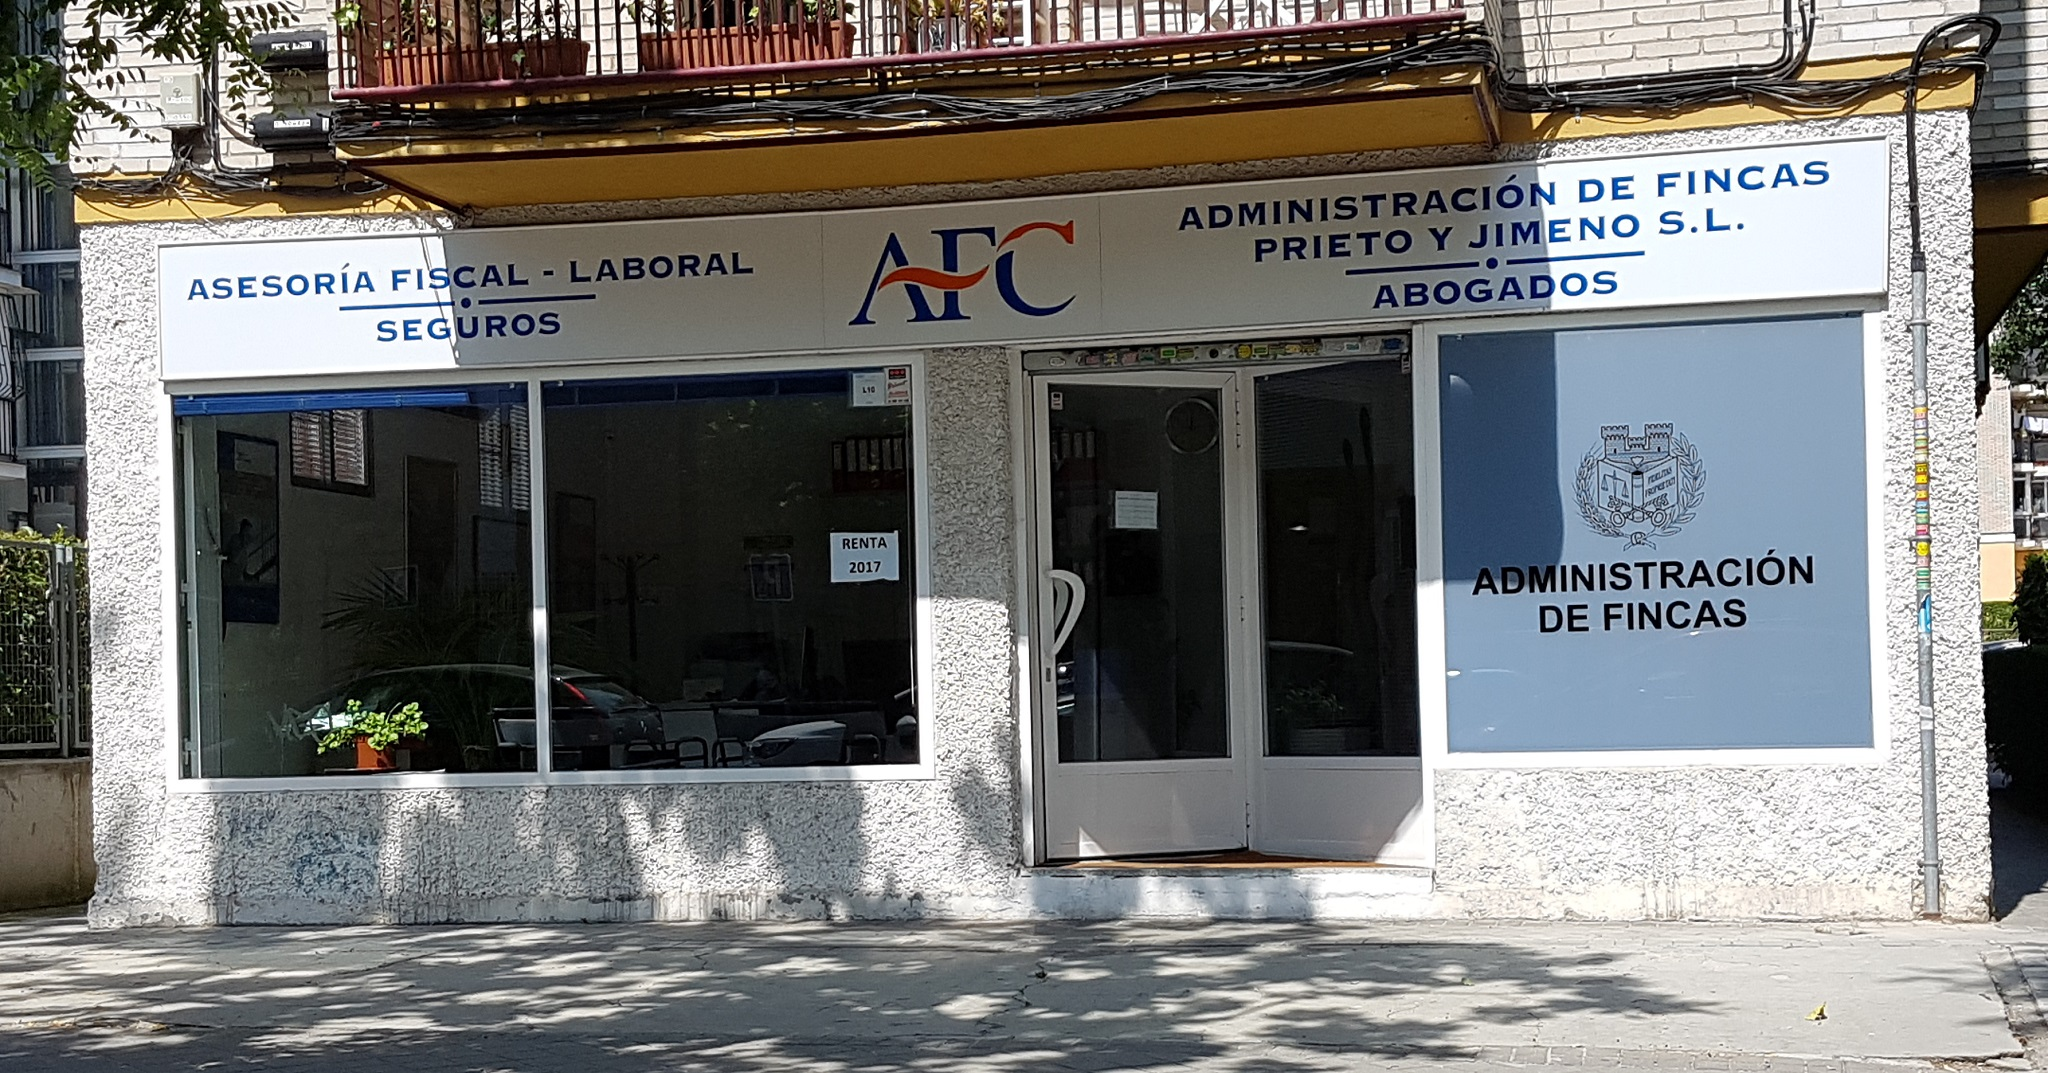 asesor fiscal